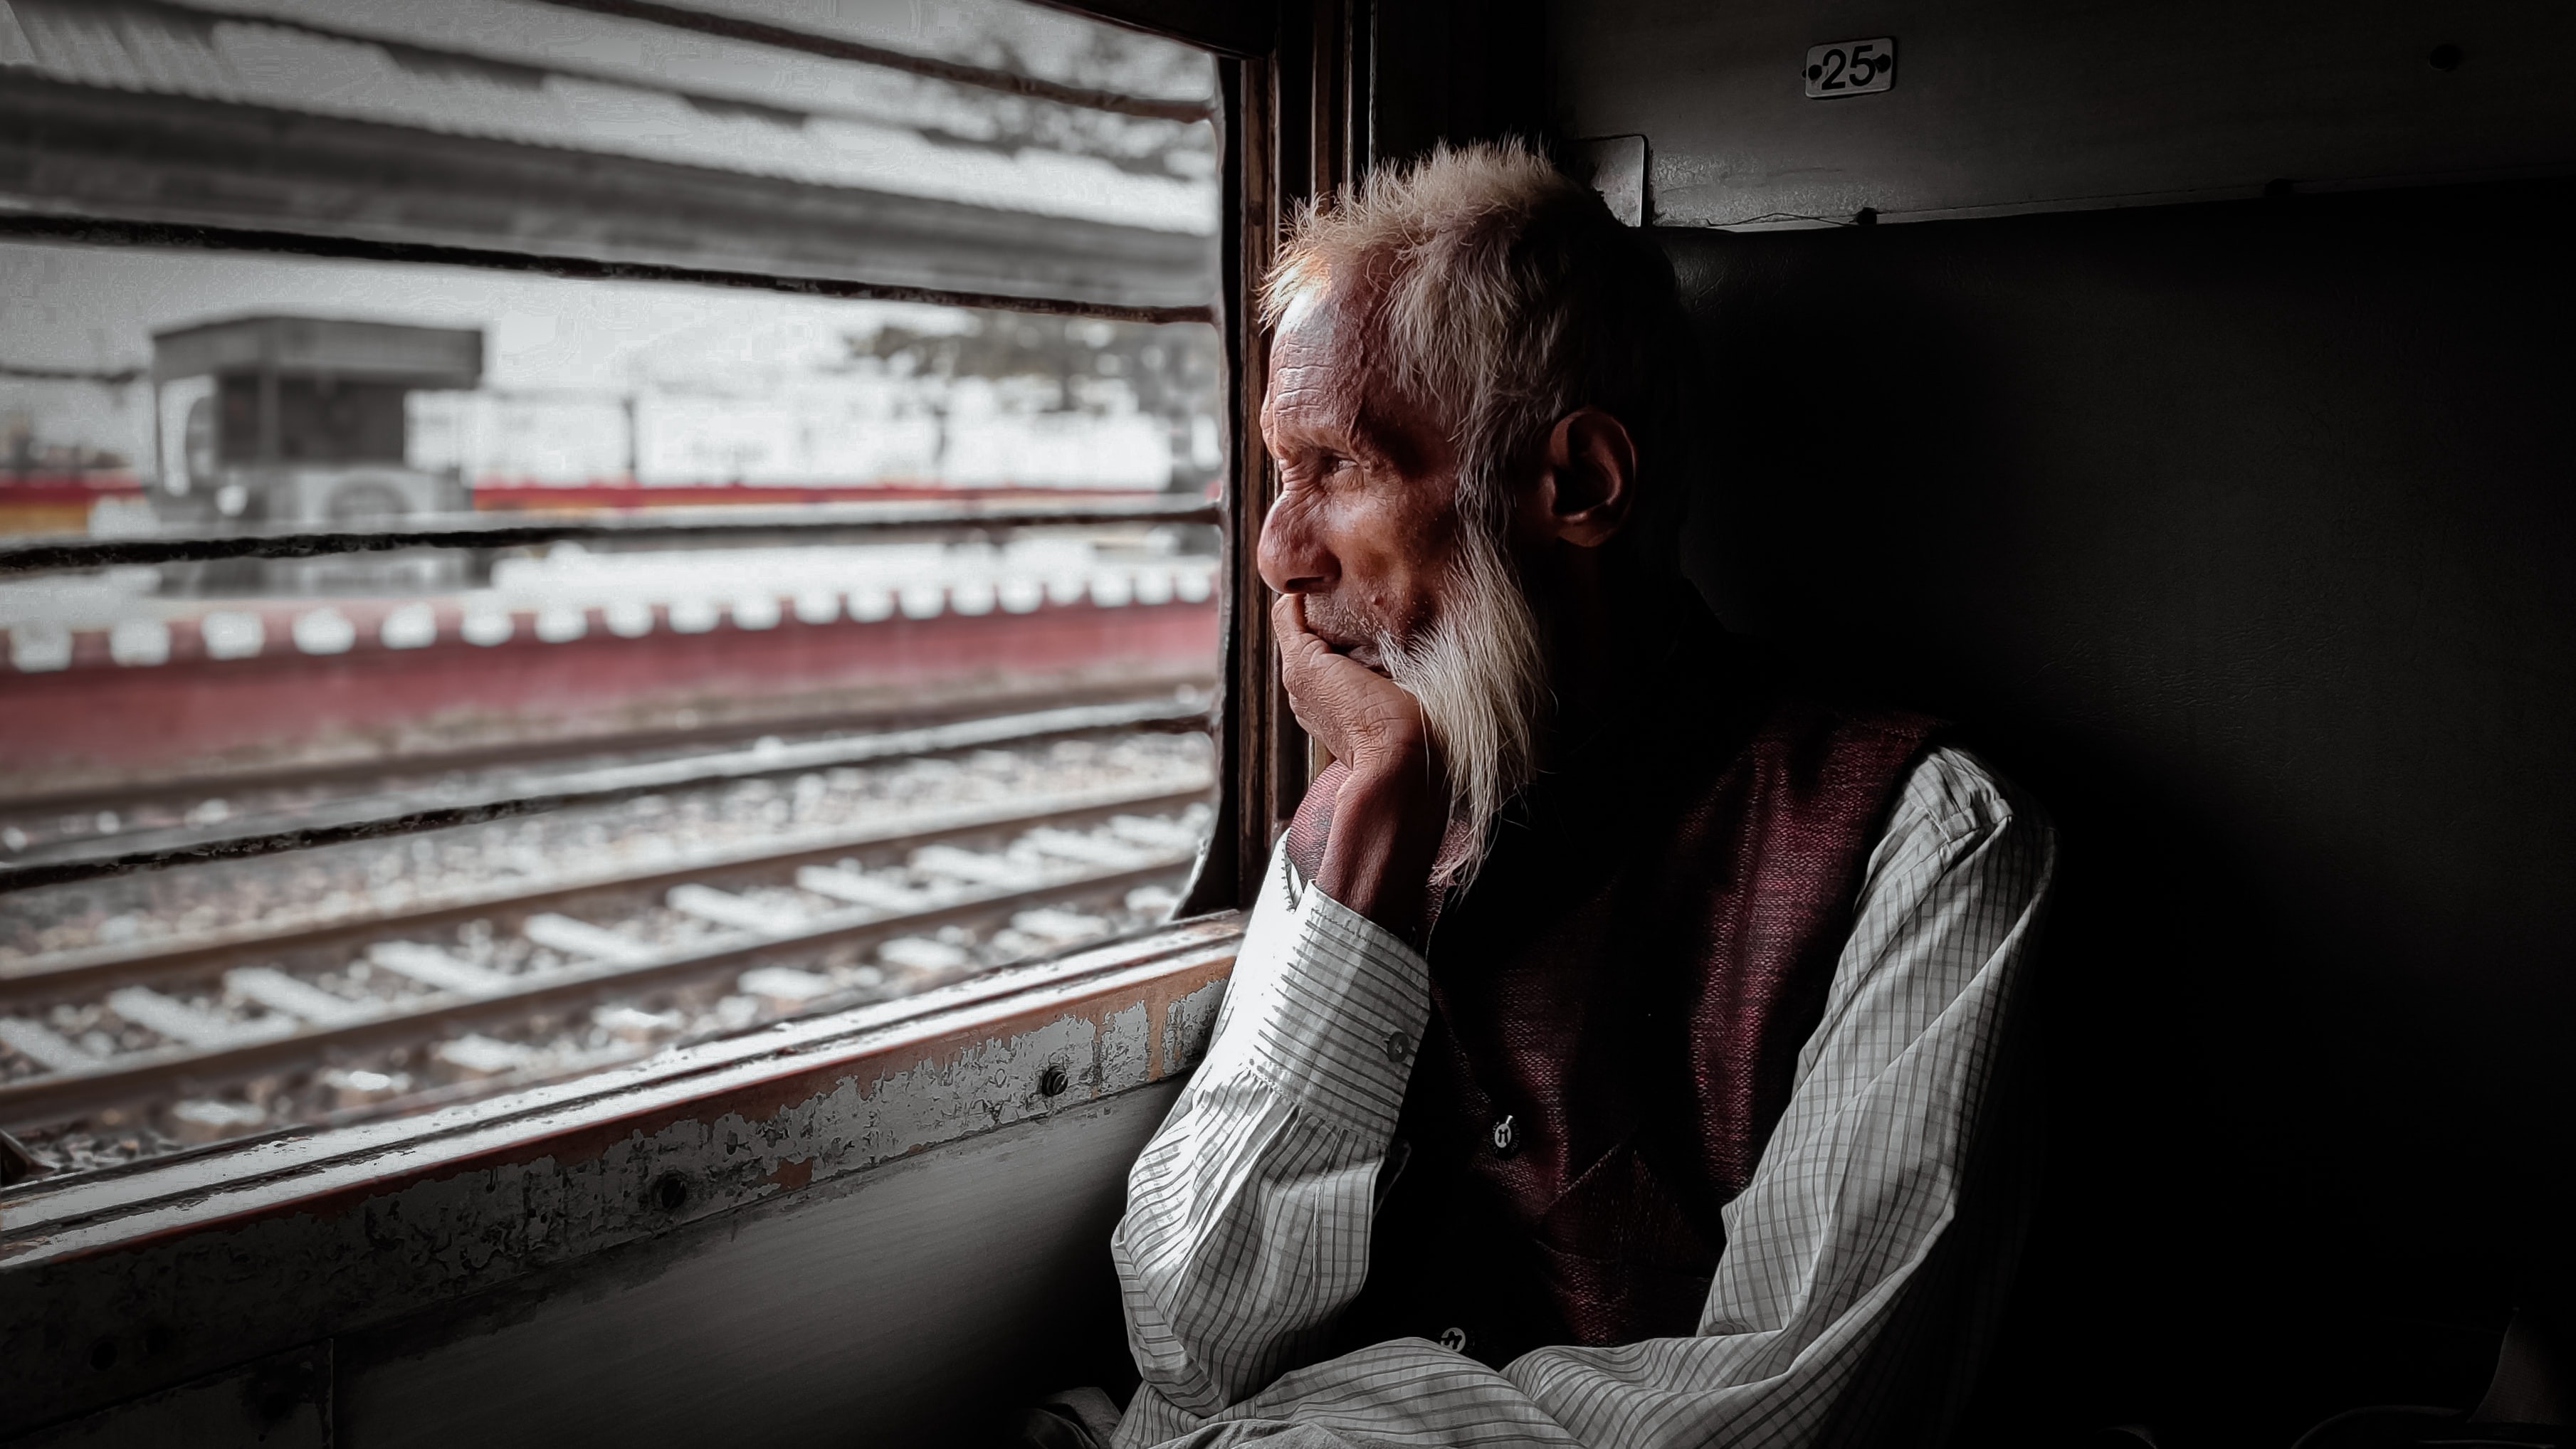 Old retired man riding a train